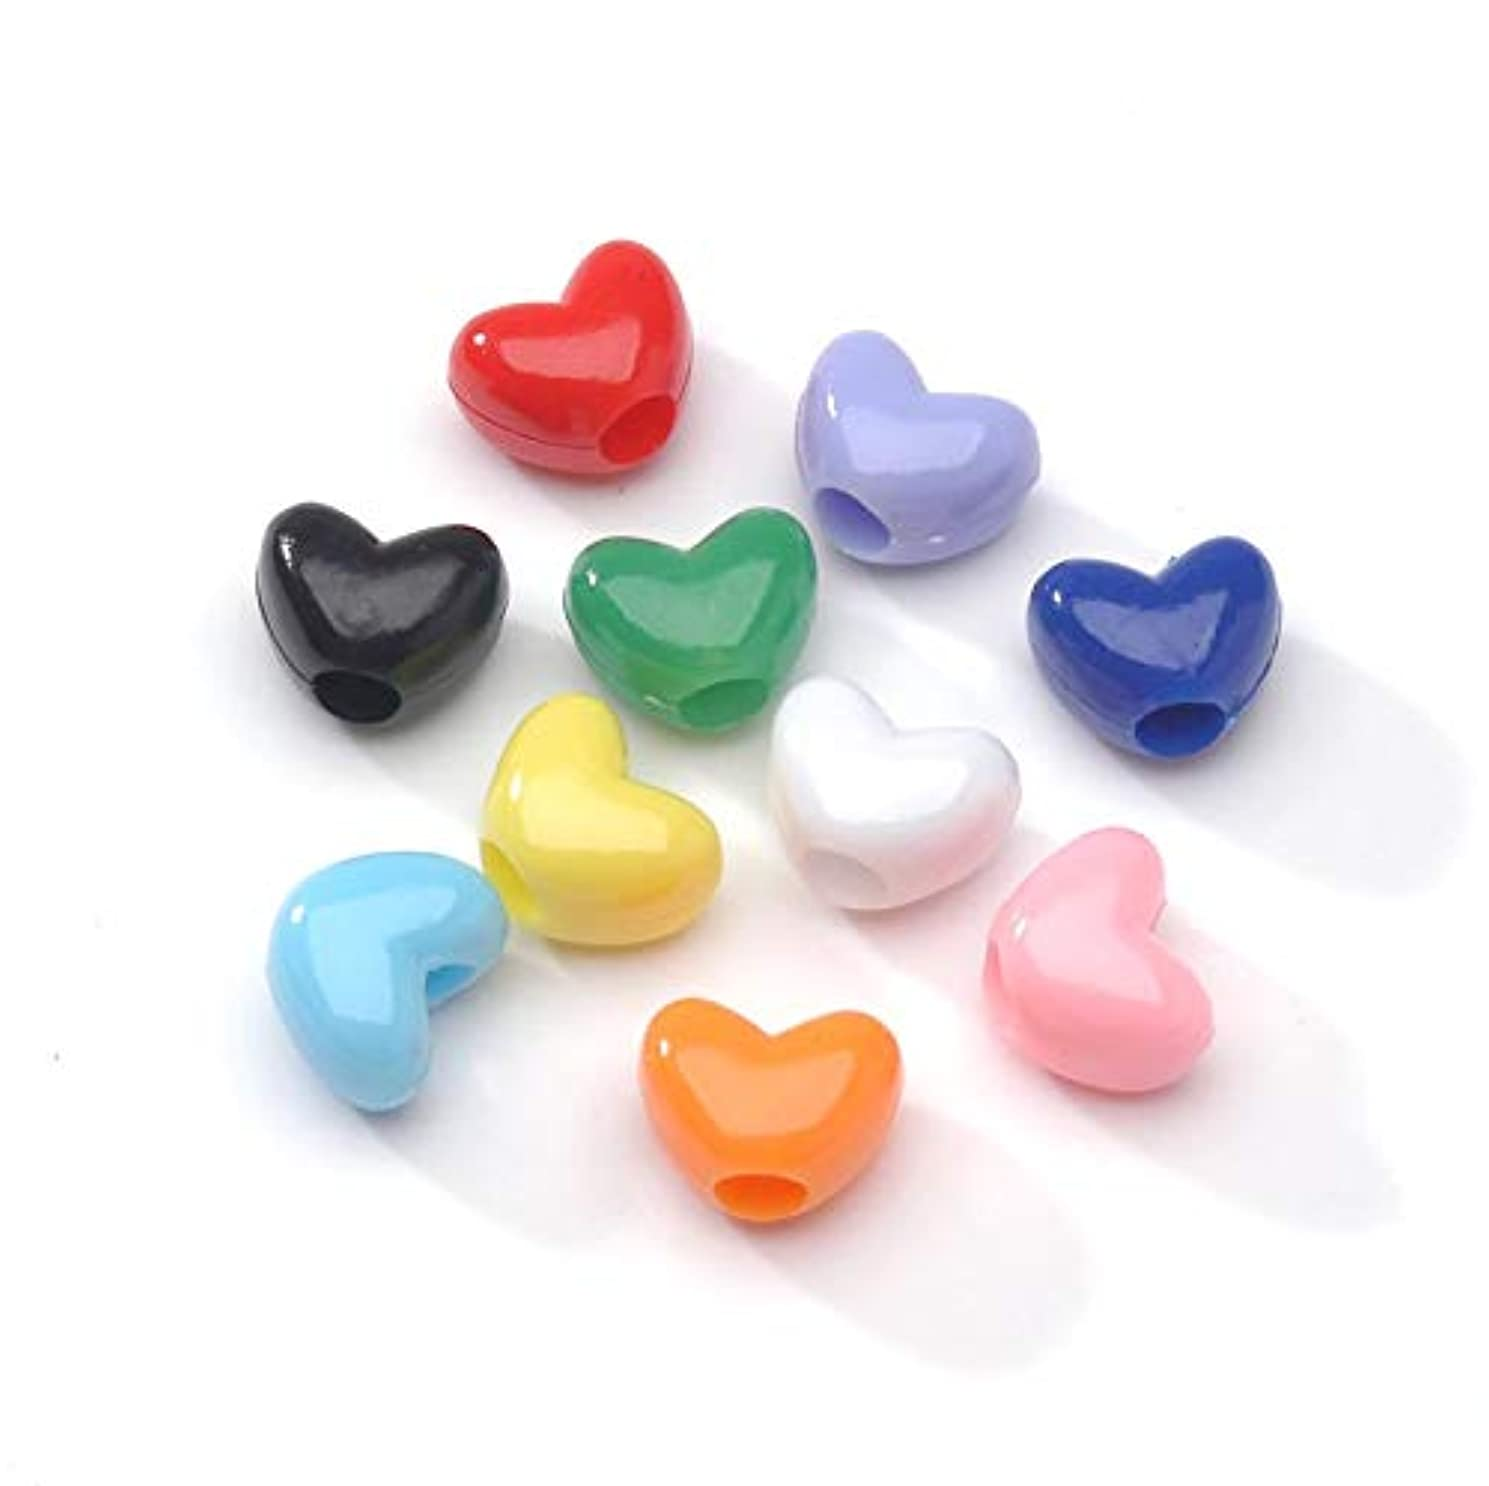 Pony Beads 0601-33 Bead Pony Hearts Opaque Multi Color 9mm Big Value (200 Pack), Multicolor